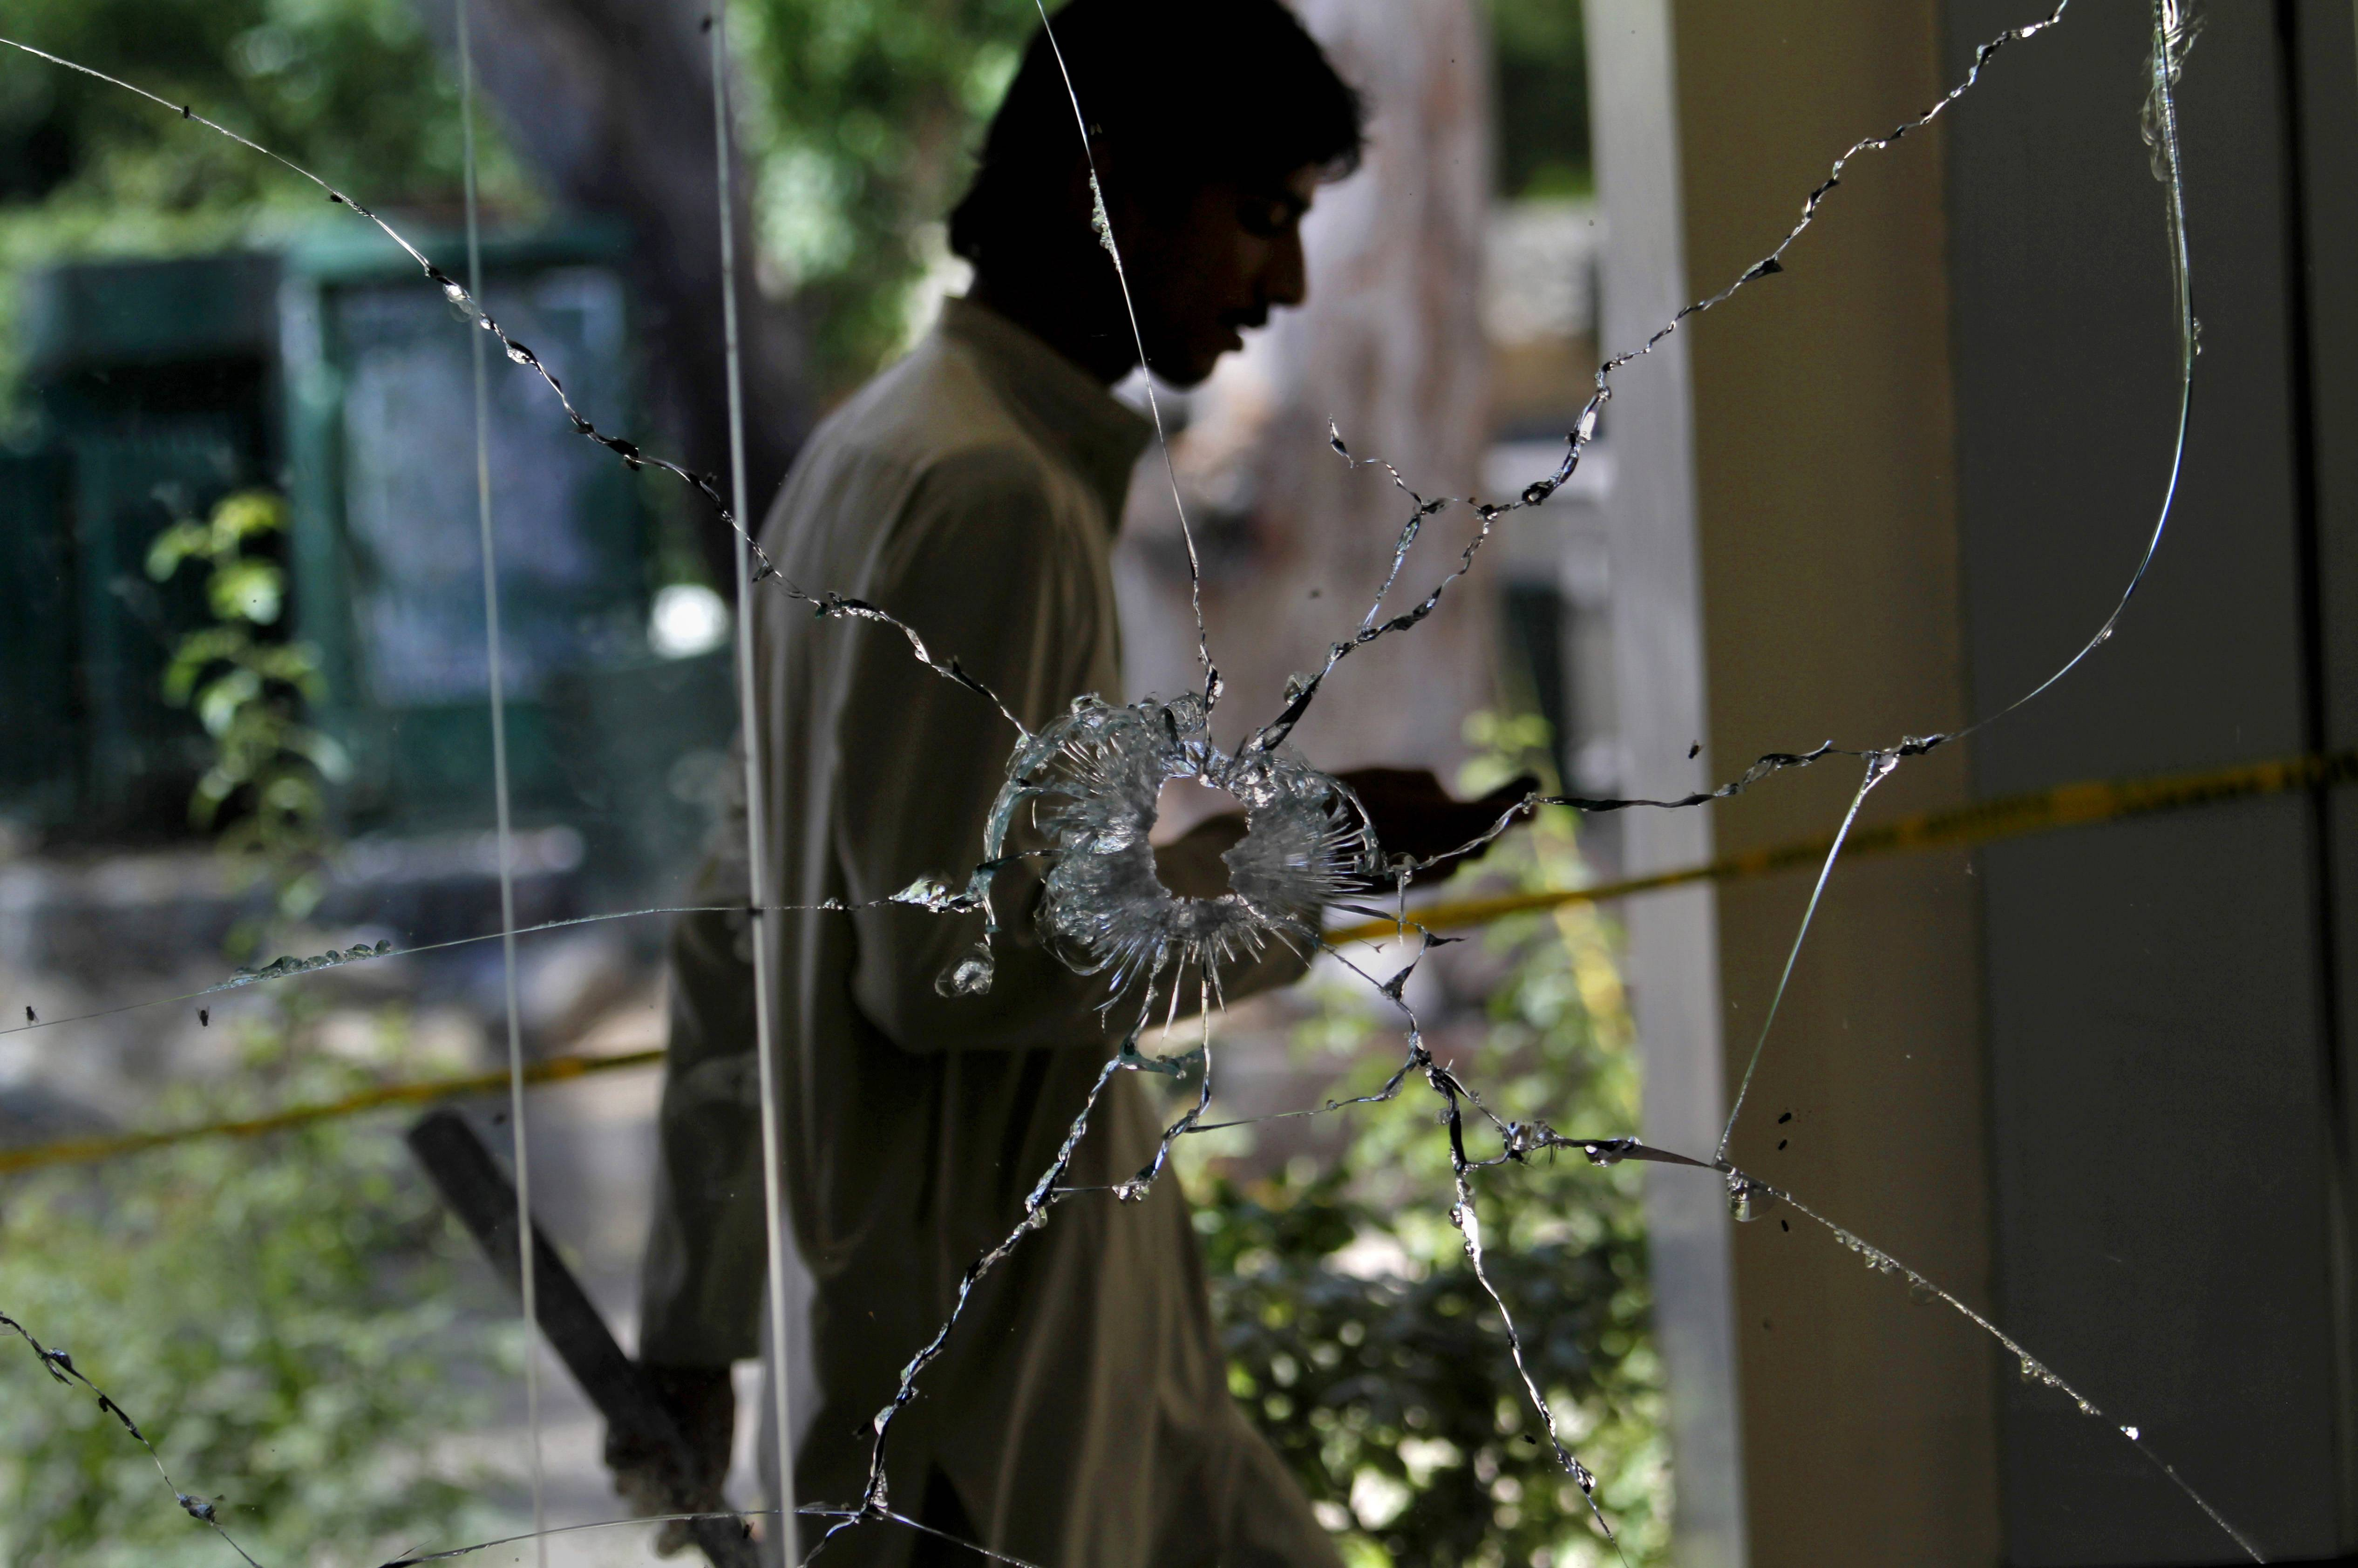 A man walks past a shattered window of shop damaged by a deadly explosion in Islamabad, Pakistan, Saturday, May 24. A bomb exploded in a supermarket parking lot at about 2 a.m. Saturday, killing a guard and wounding a passer-by, police officer Chaudhry Abid said.